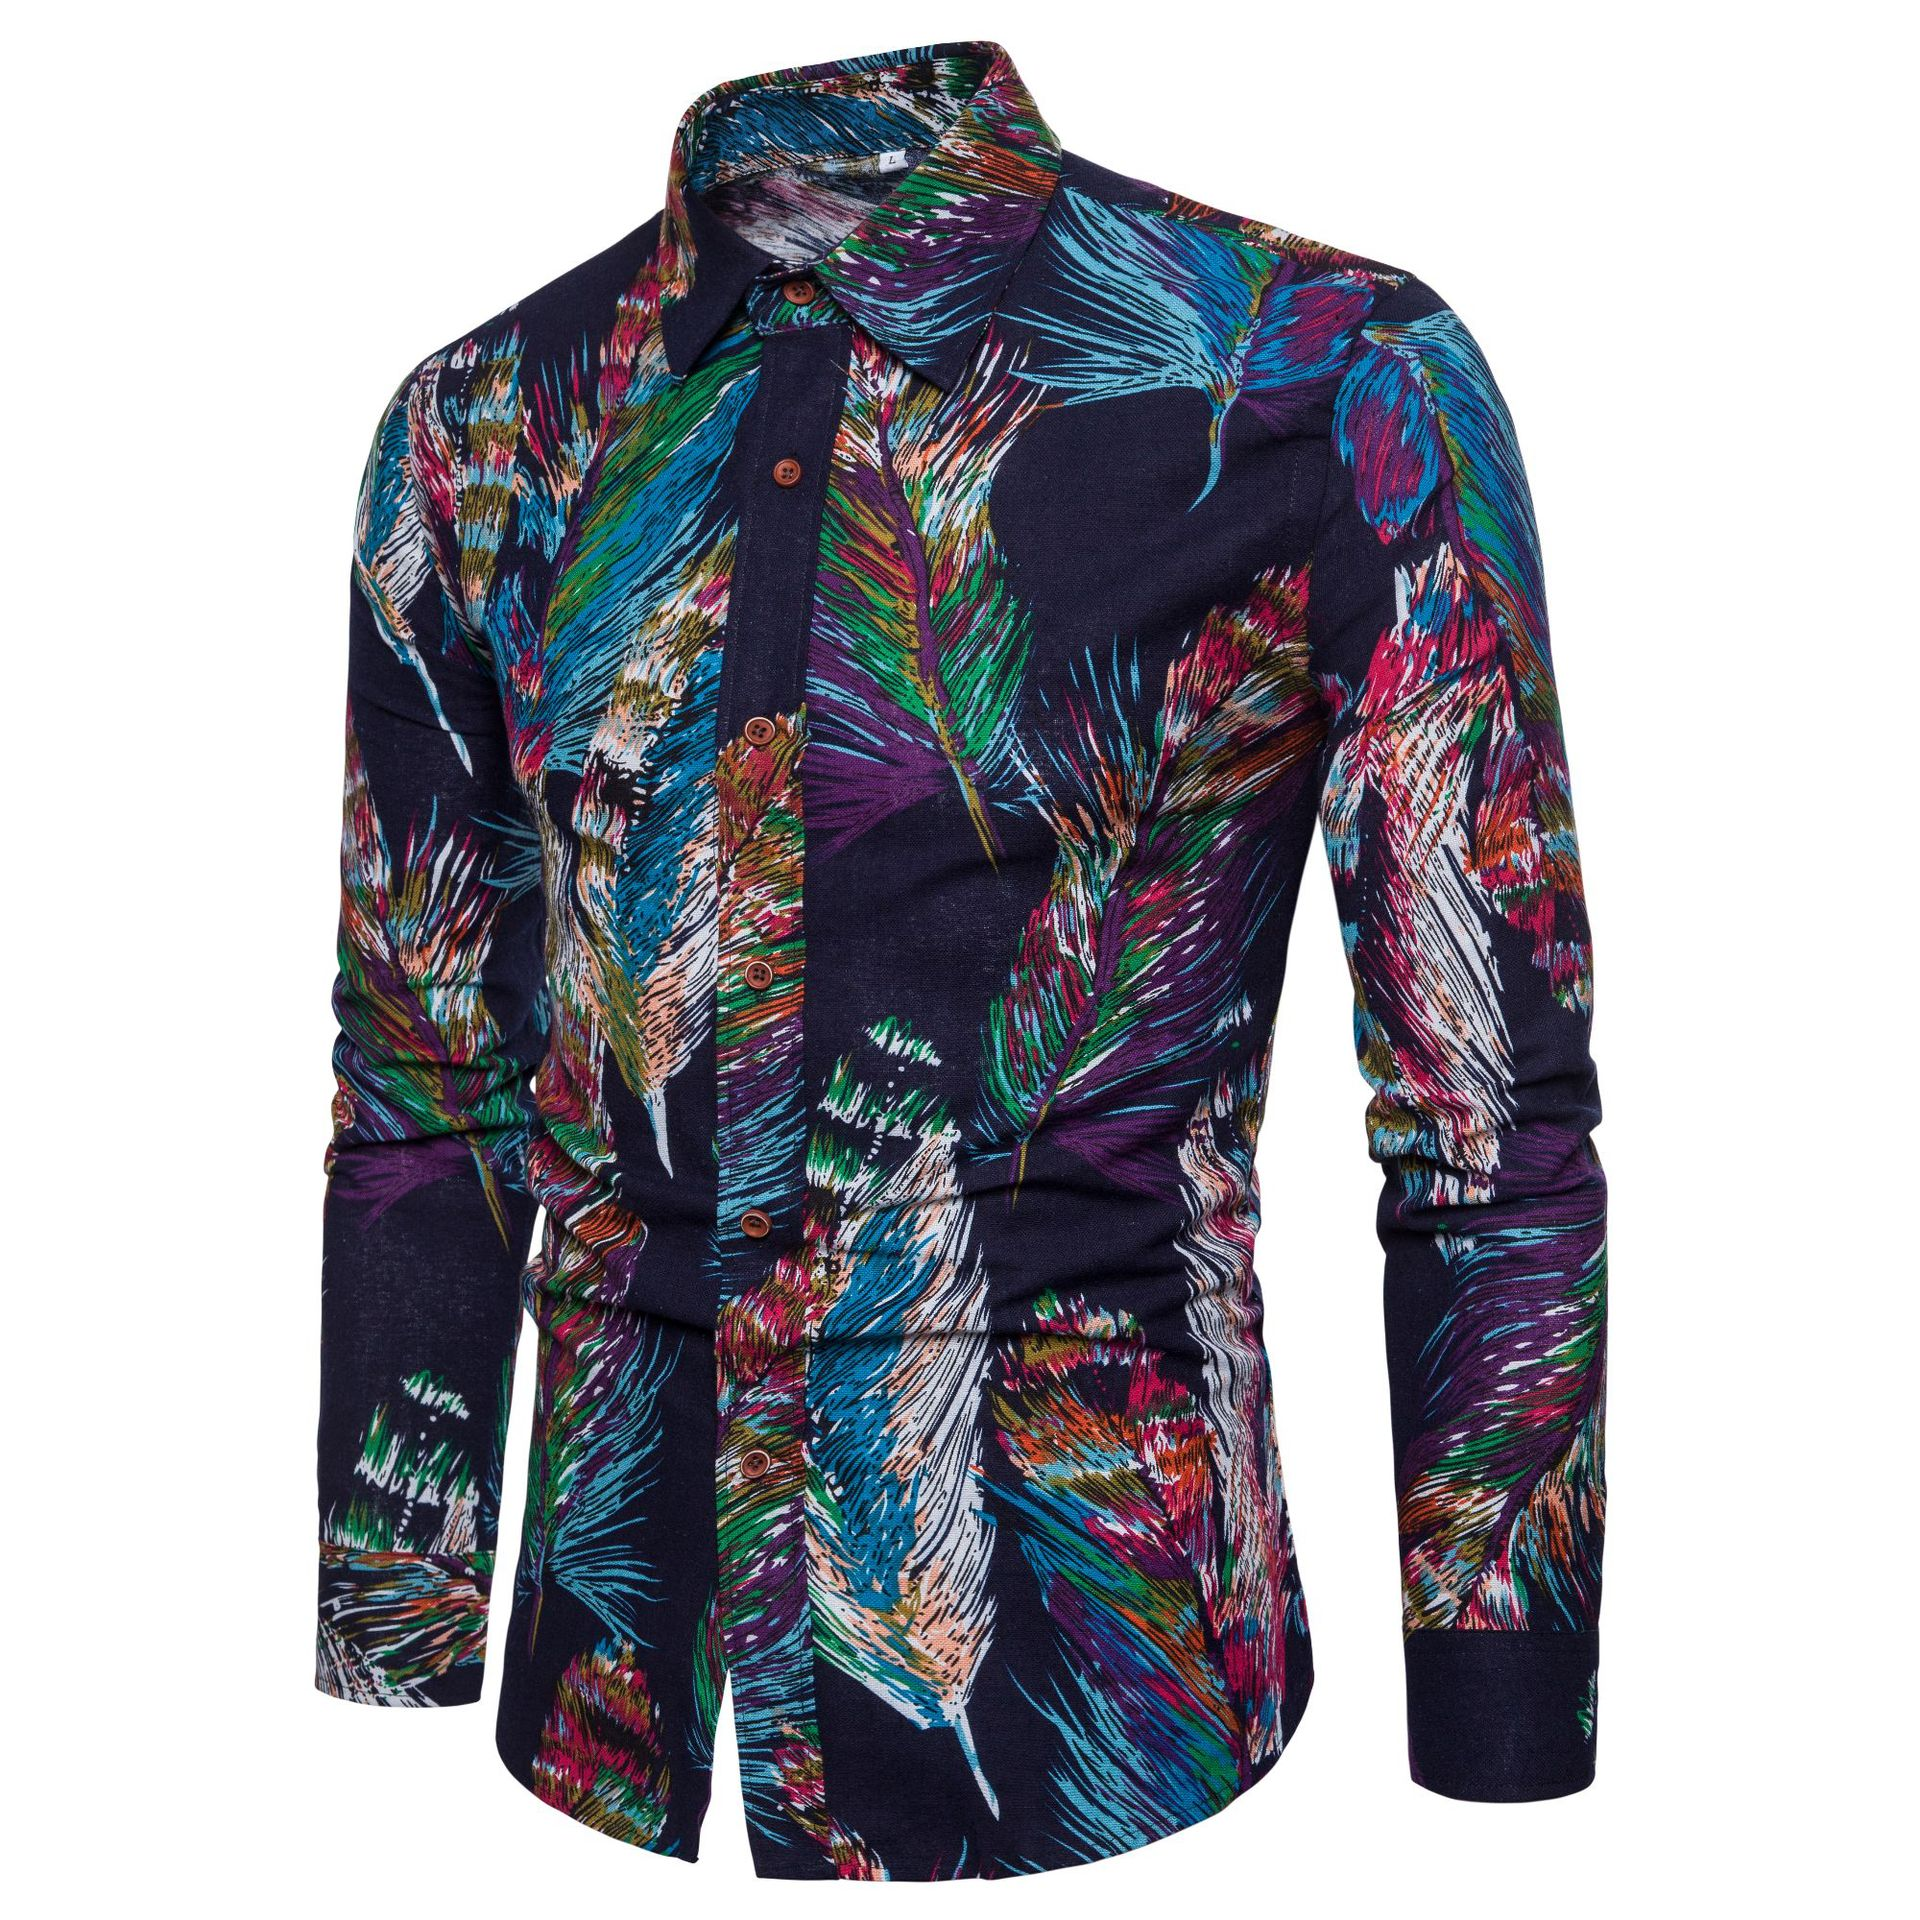 Men Shirt 2020 Spring Autumn Long Sleeve Flower Print Hawaii Shirt Camisa Masculina Brand Male High Quality Dress Shirt